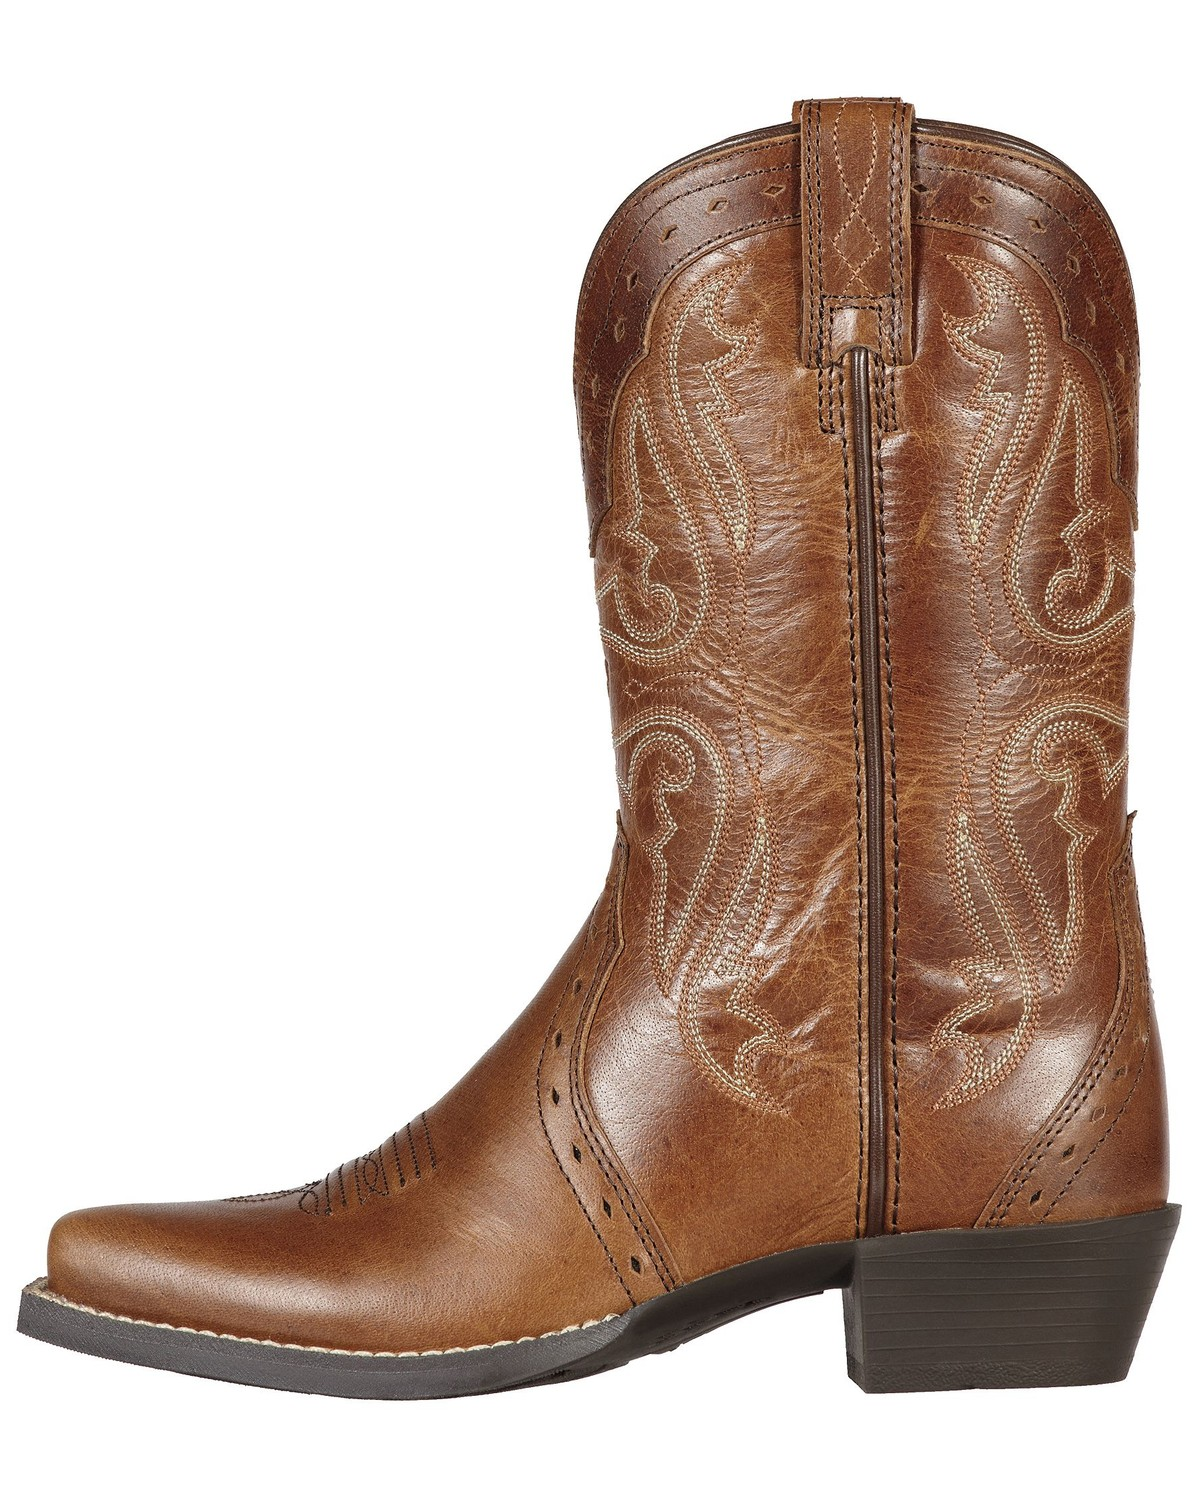 Ariat Girls' Heritage Vintage Cedar Cowgirl Boots | Sheplers